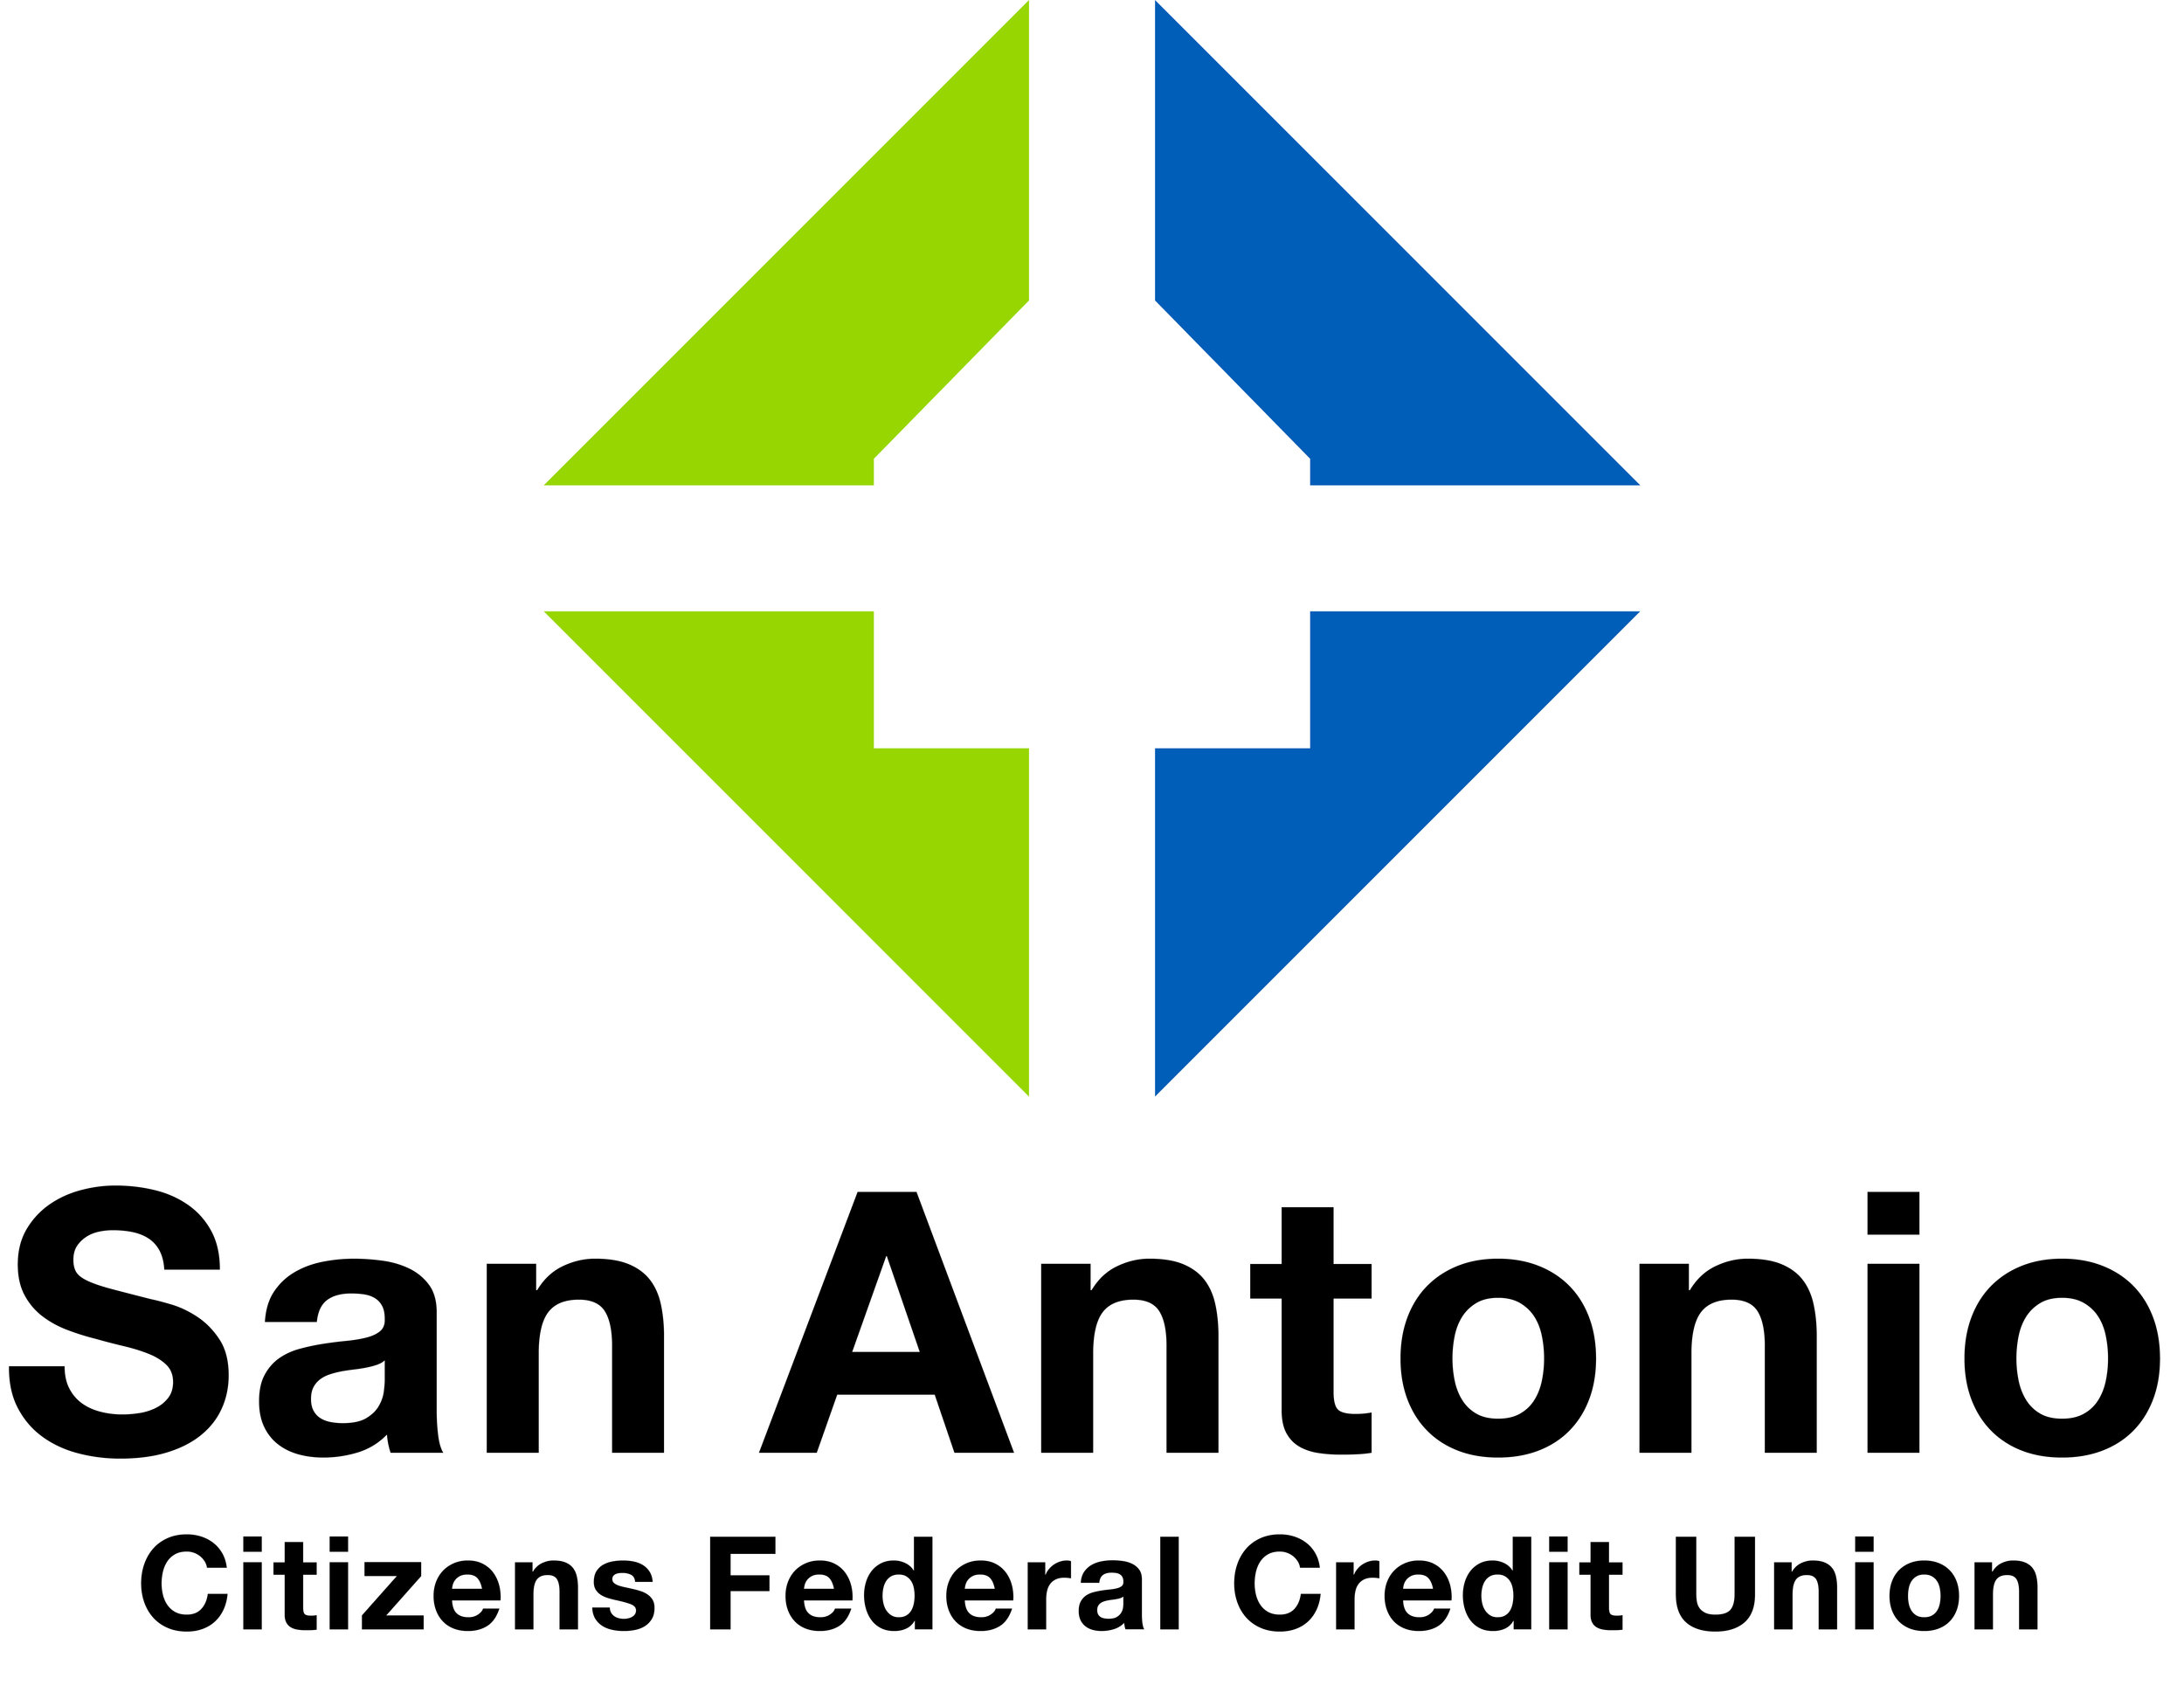 San Antonio Citizens Federal Credit Union   Address: 7301 Gall Blvd Zephyrhills  Phone: (352) 588-2732  Email: jevans@sacfcu.org   Website    Facebook